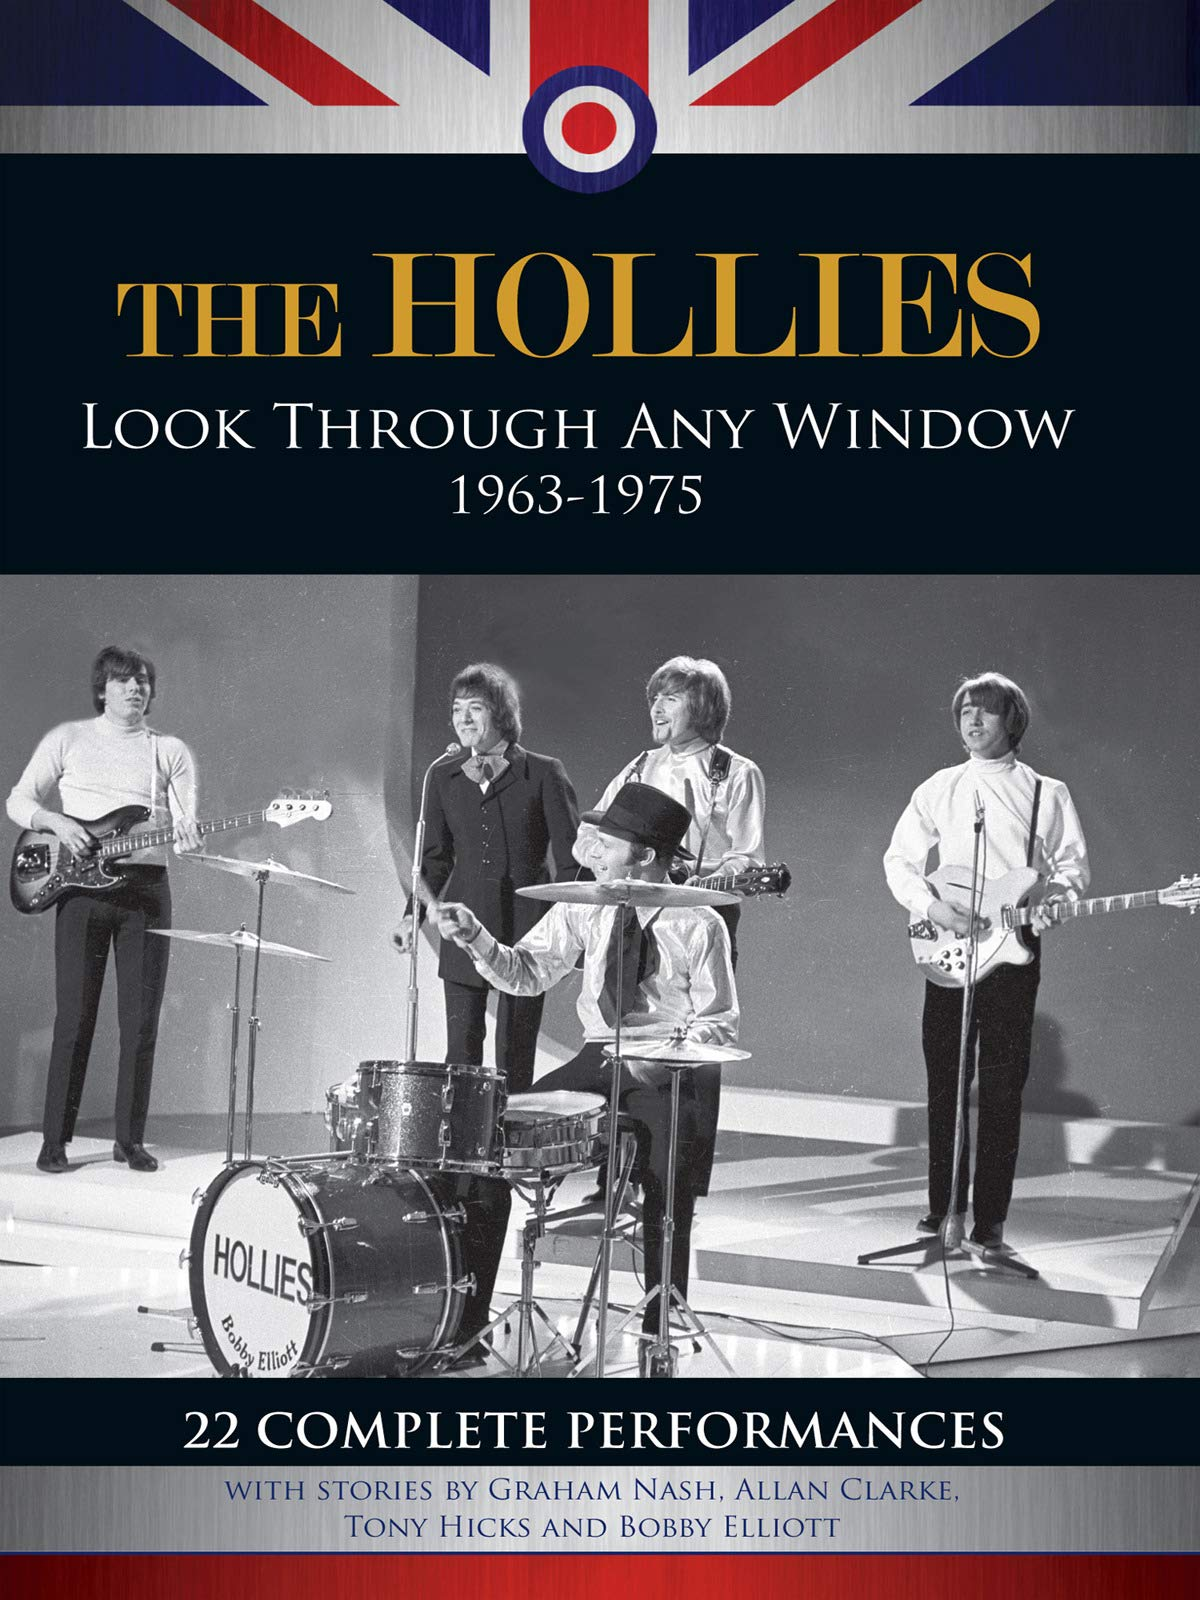 The Hollies - Look Through Any Window 1963-1975 on Amazon Prime Video UK